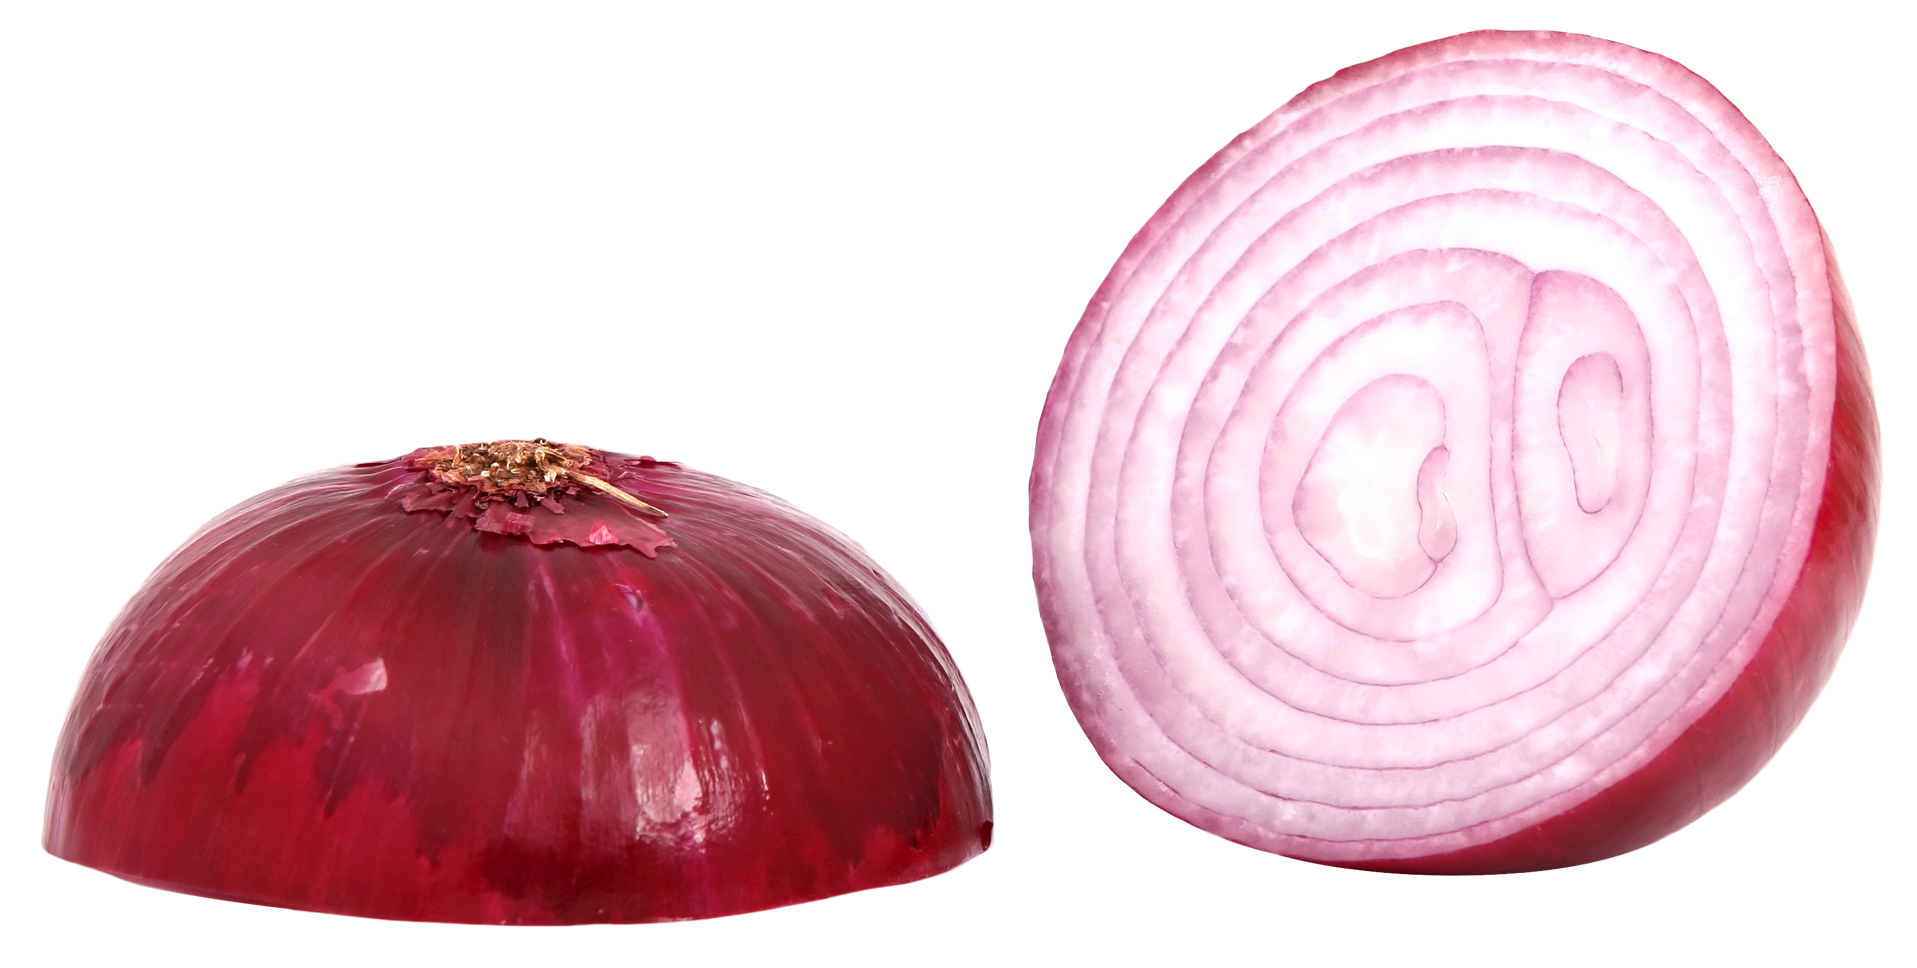 Red sliced png image. Onion clipart onion slice